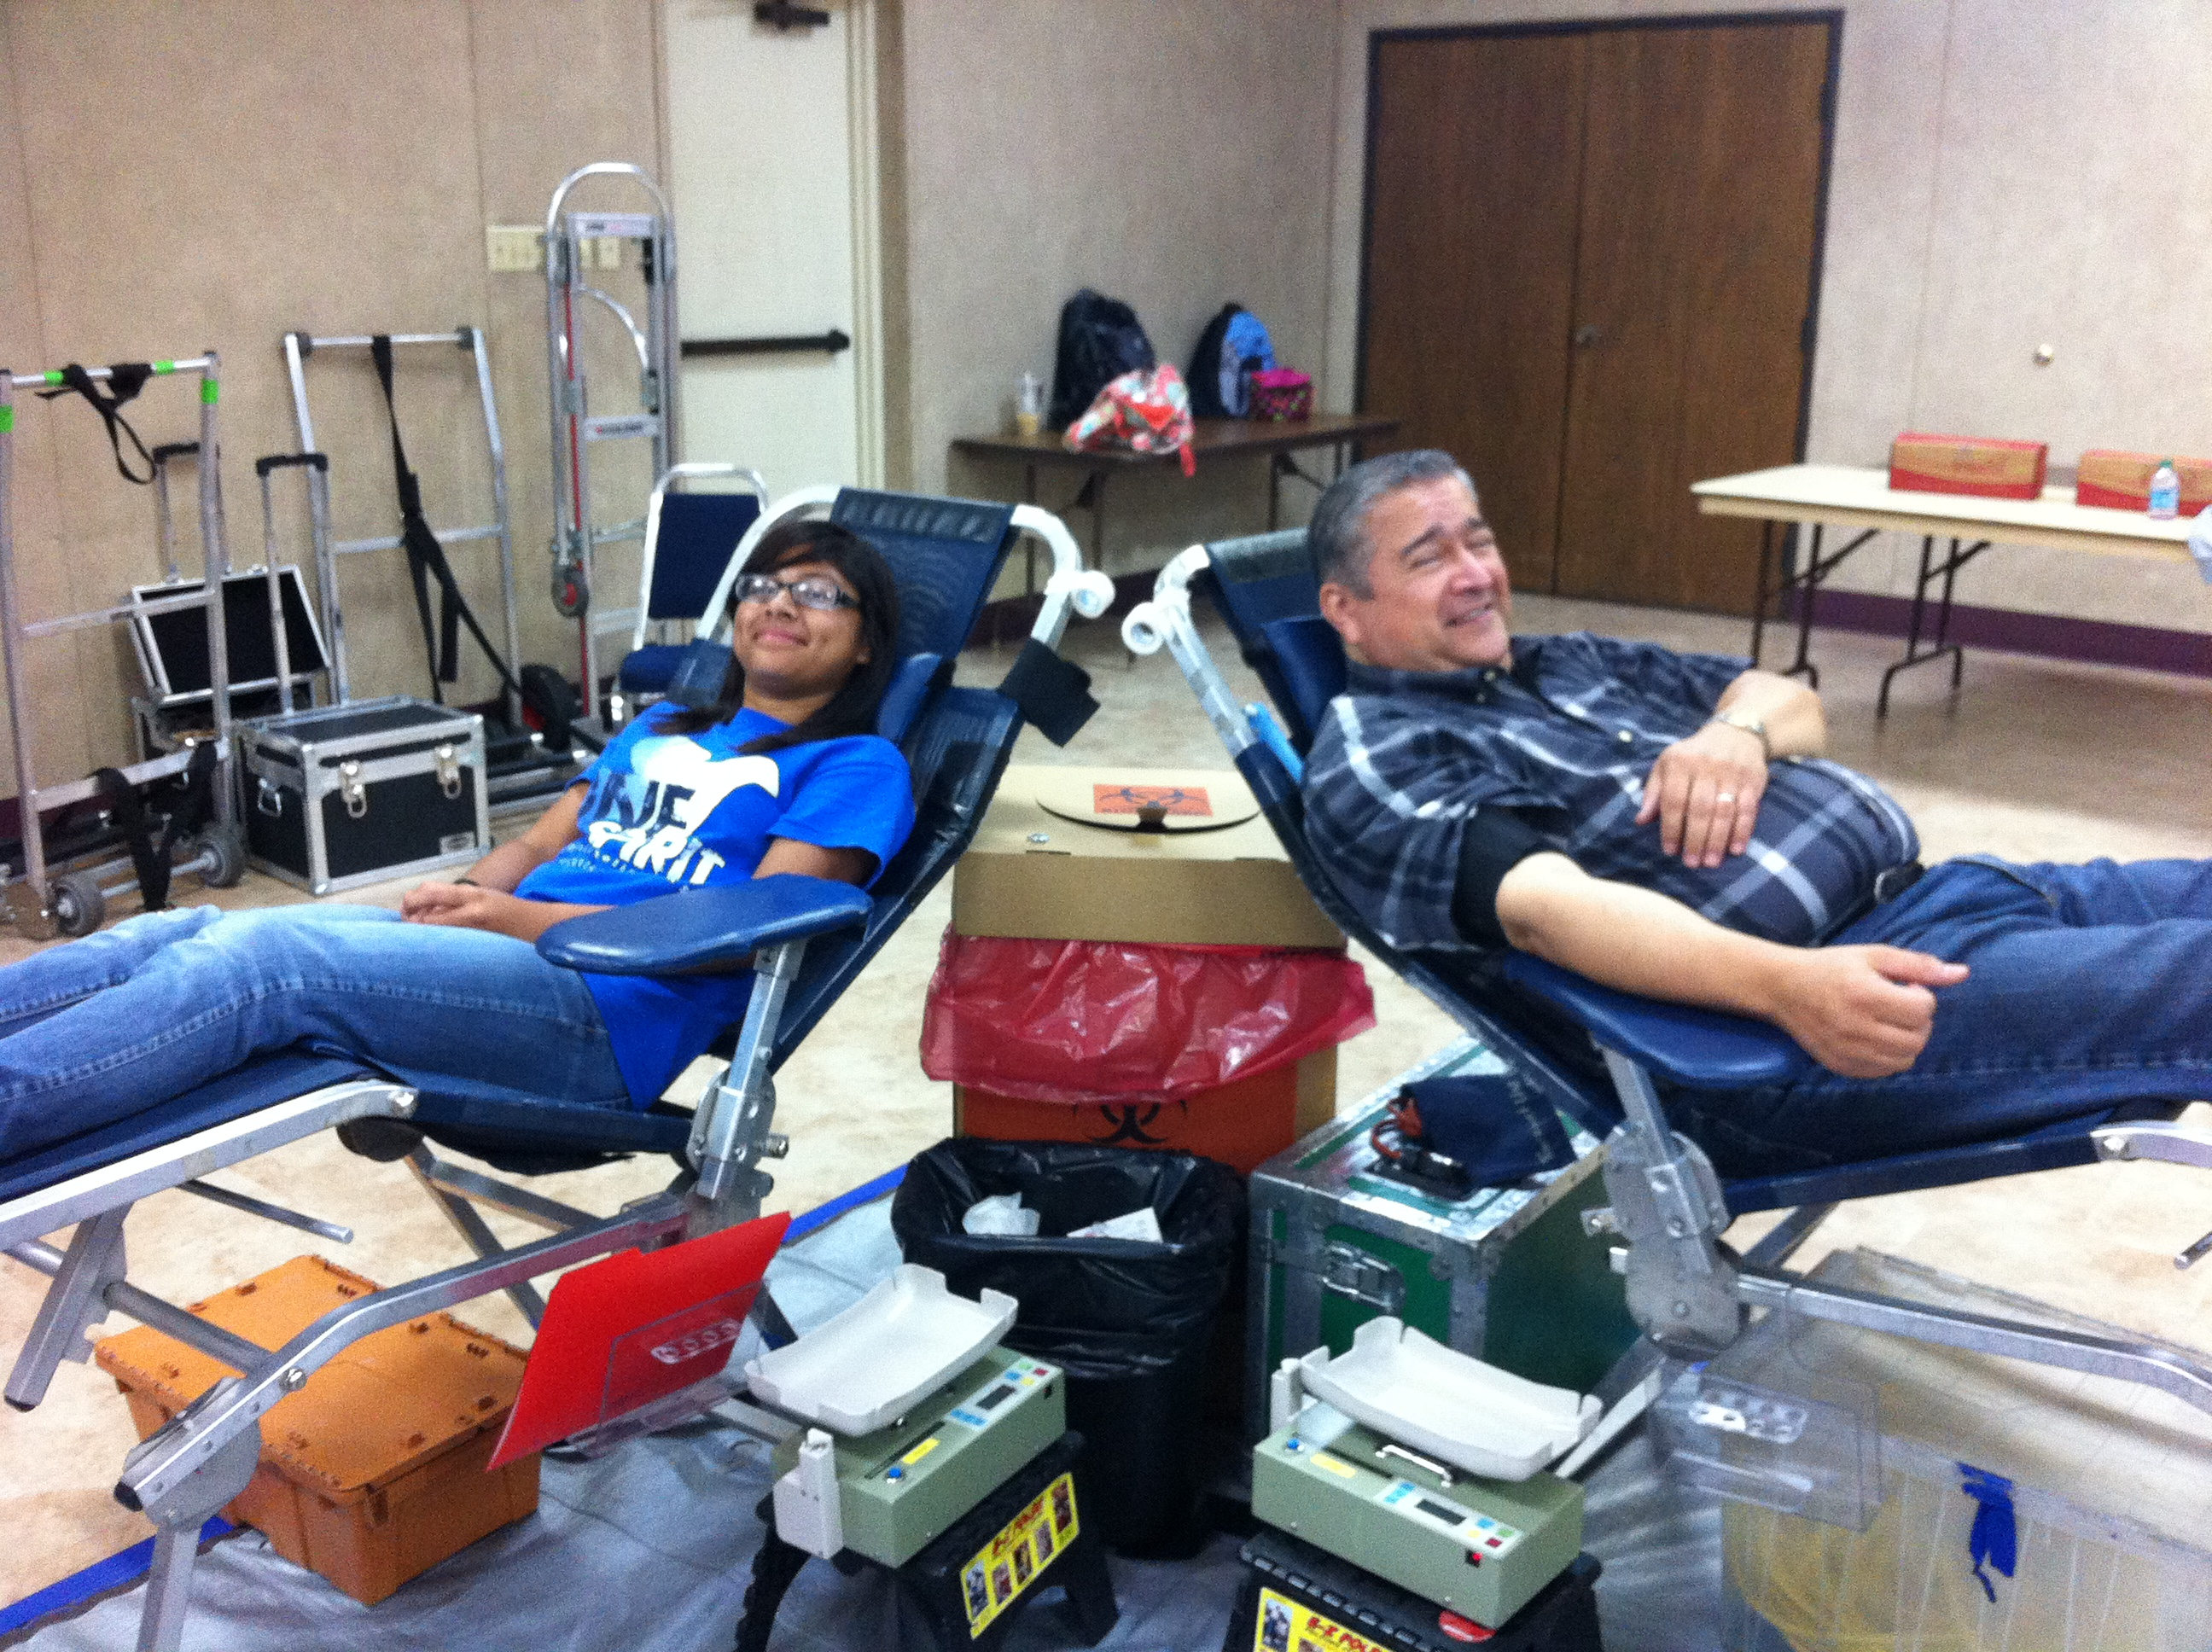 16 year old Lissette Torreblanca waits to give blood for her first time as Knight Carlos Favela cheers her on